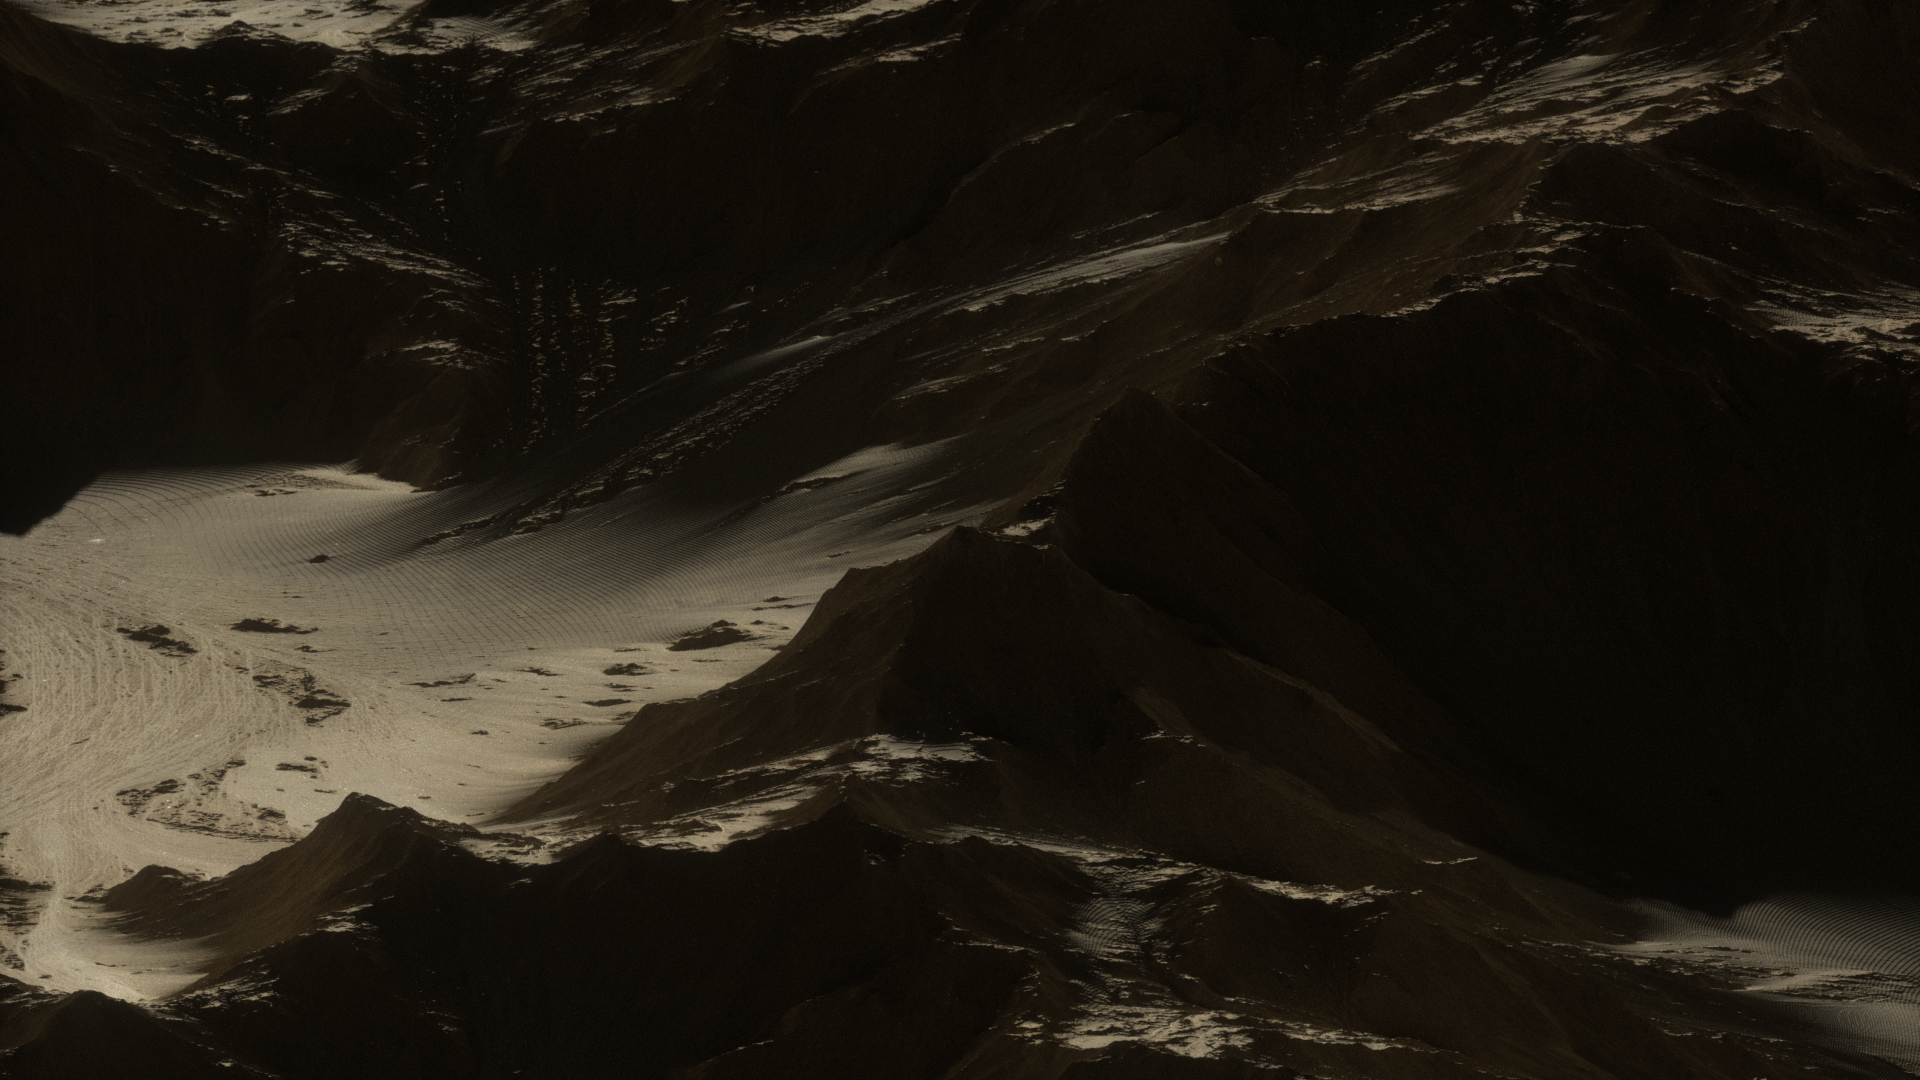 03_Mountains3_0000.png